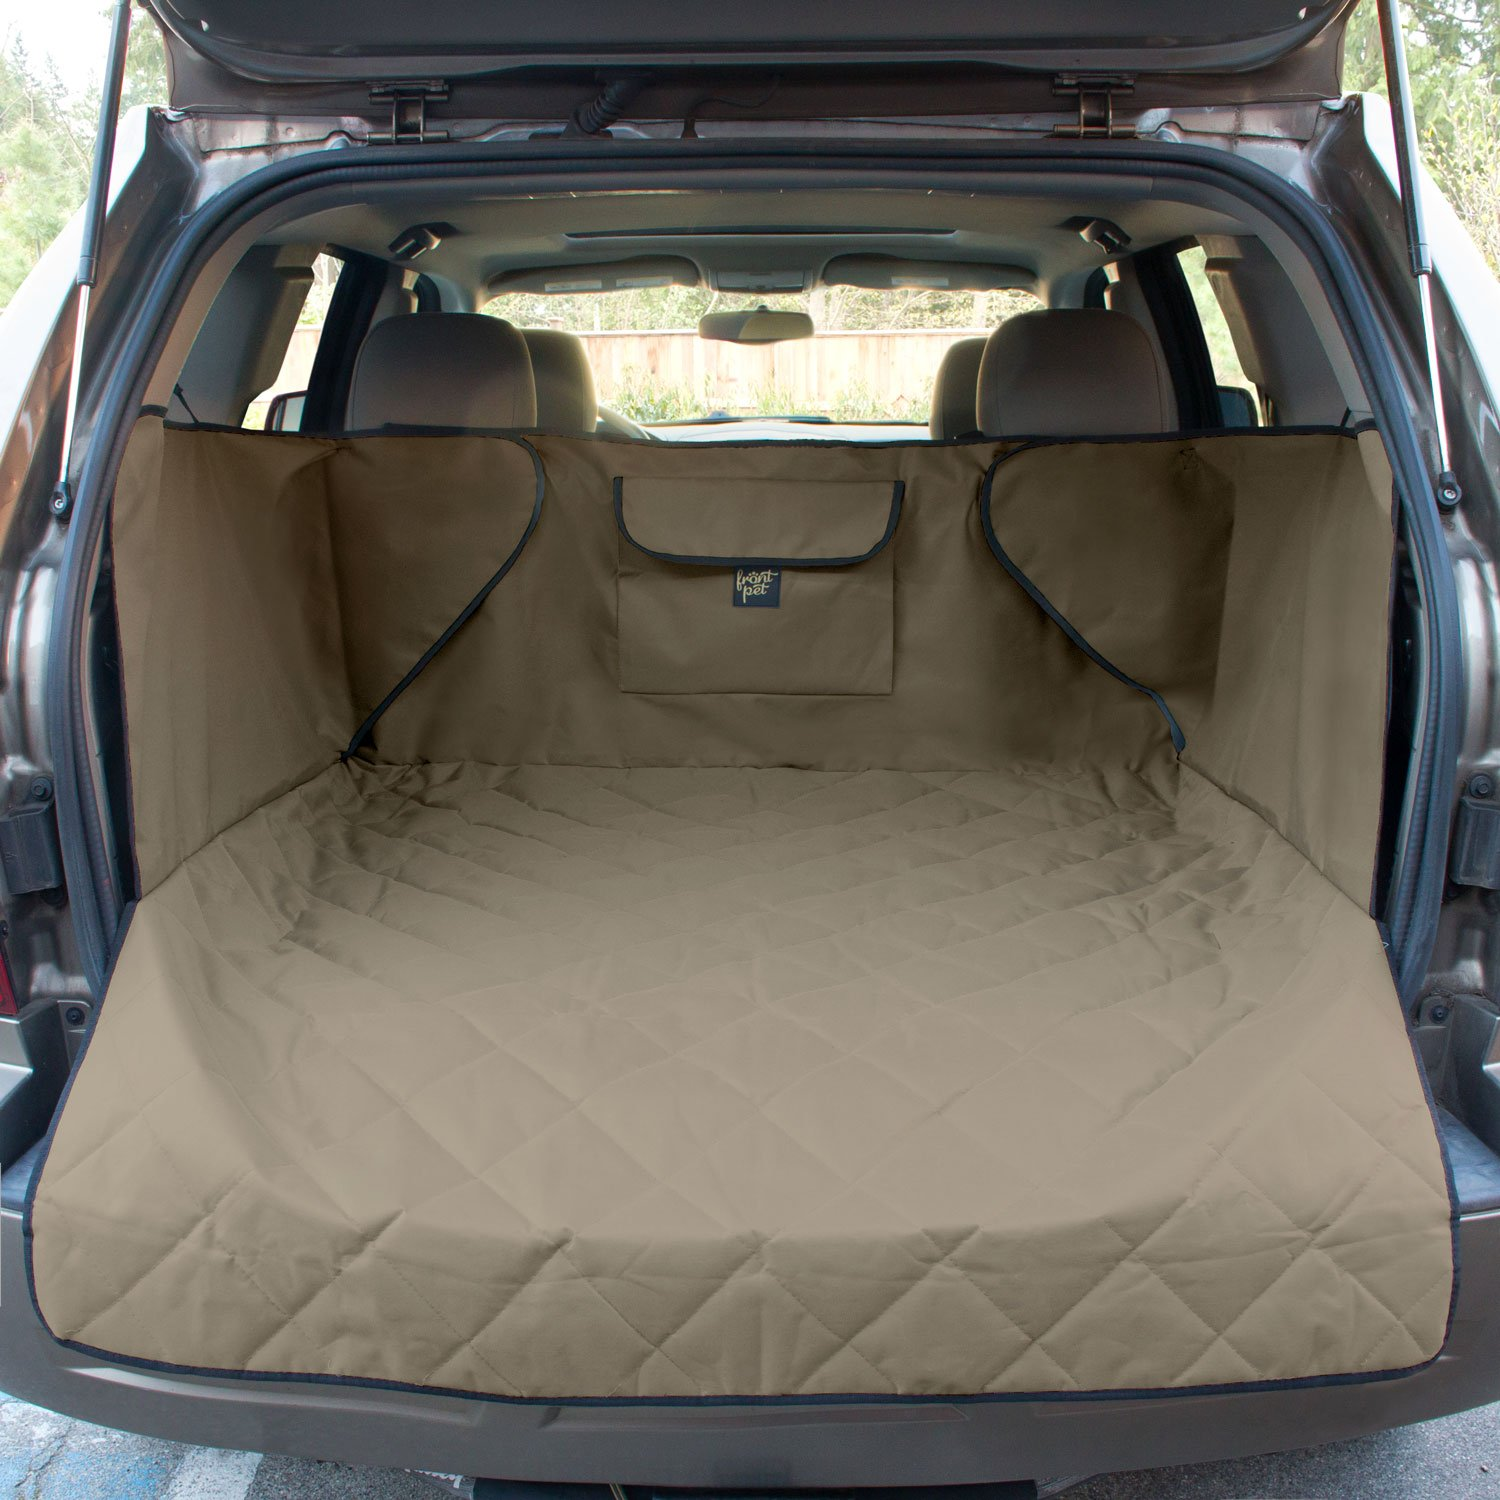 FrontPet Extra Wide Quilted Dog Cargo Cover for SUV Universal Fit for Any Animal. Durable Liner Covers and Protects Your Vehicle, Extended Width, Tan by FrontPet